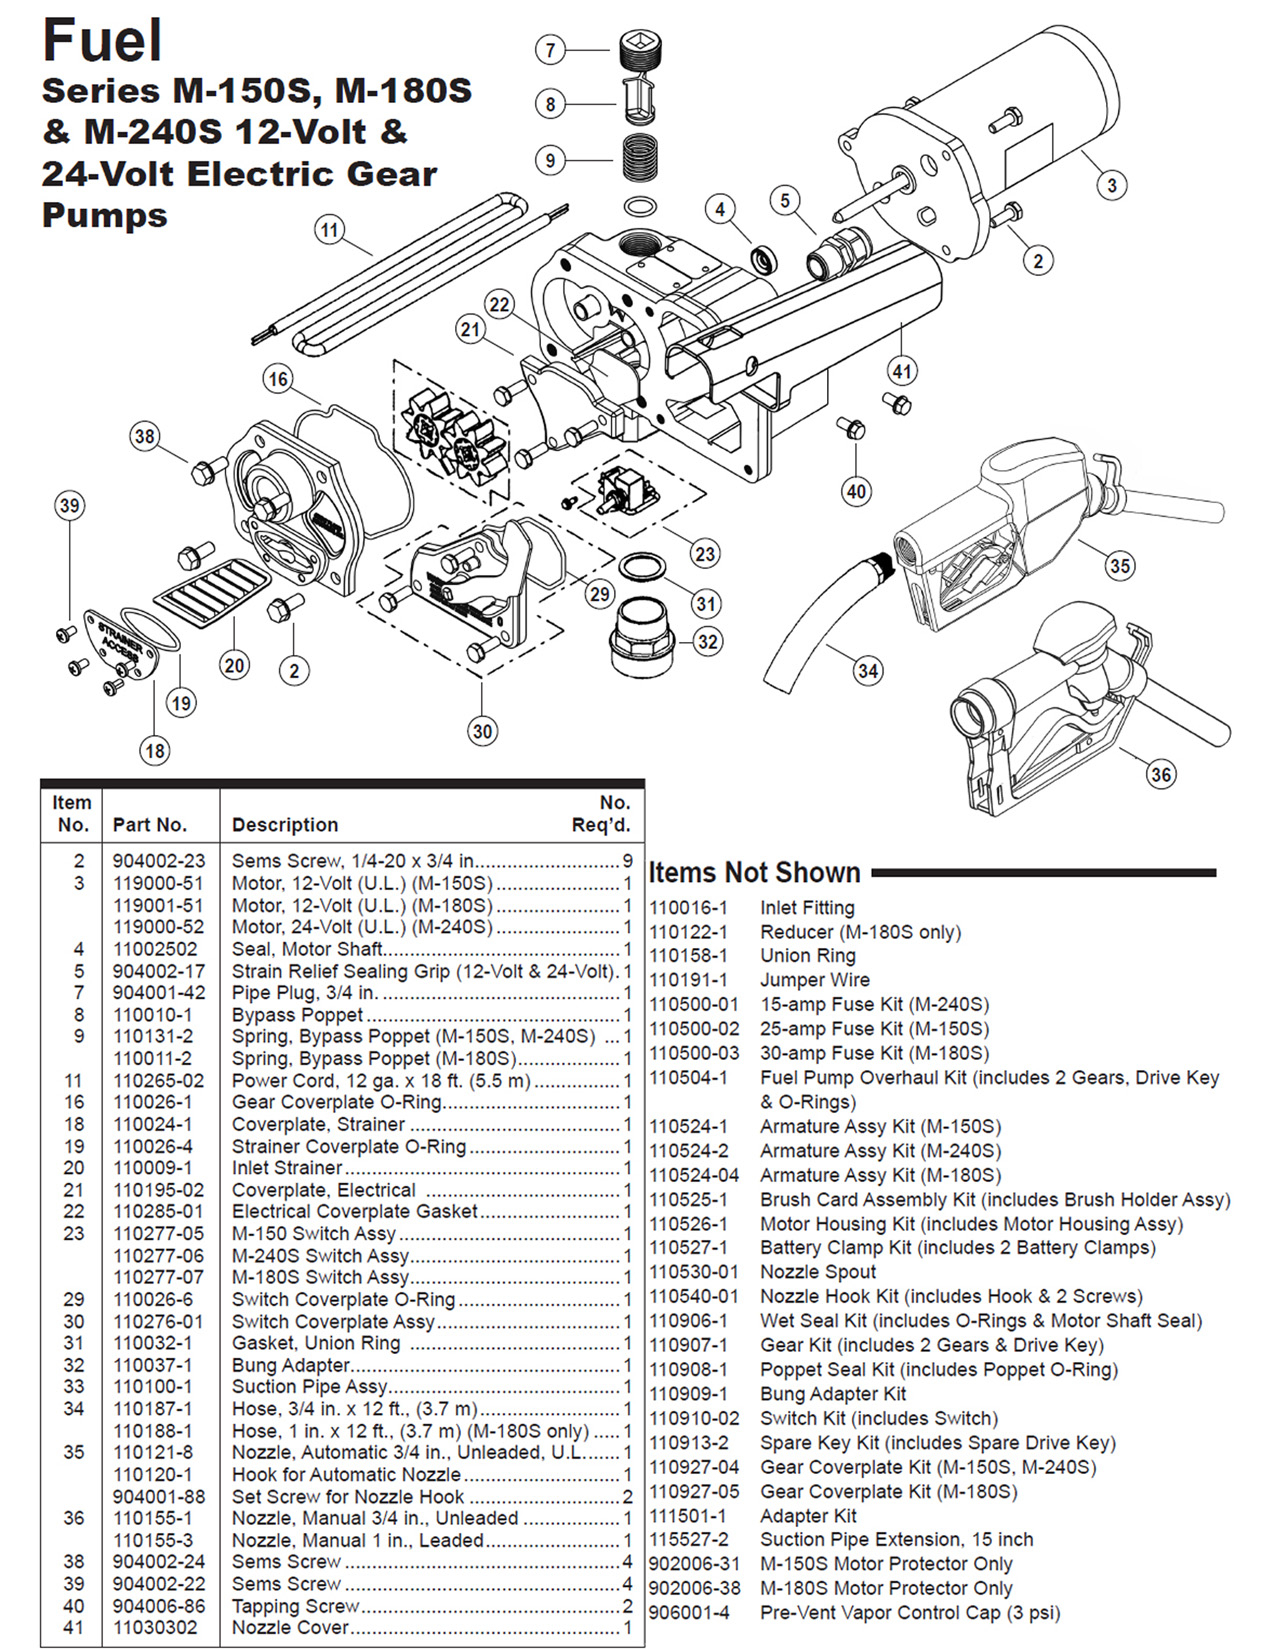 Smoke Damper Wiring Diagram